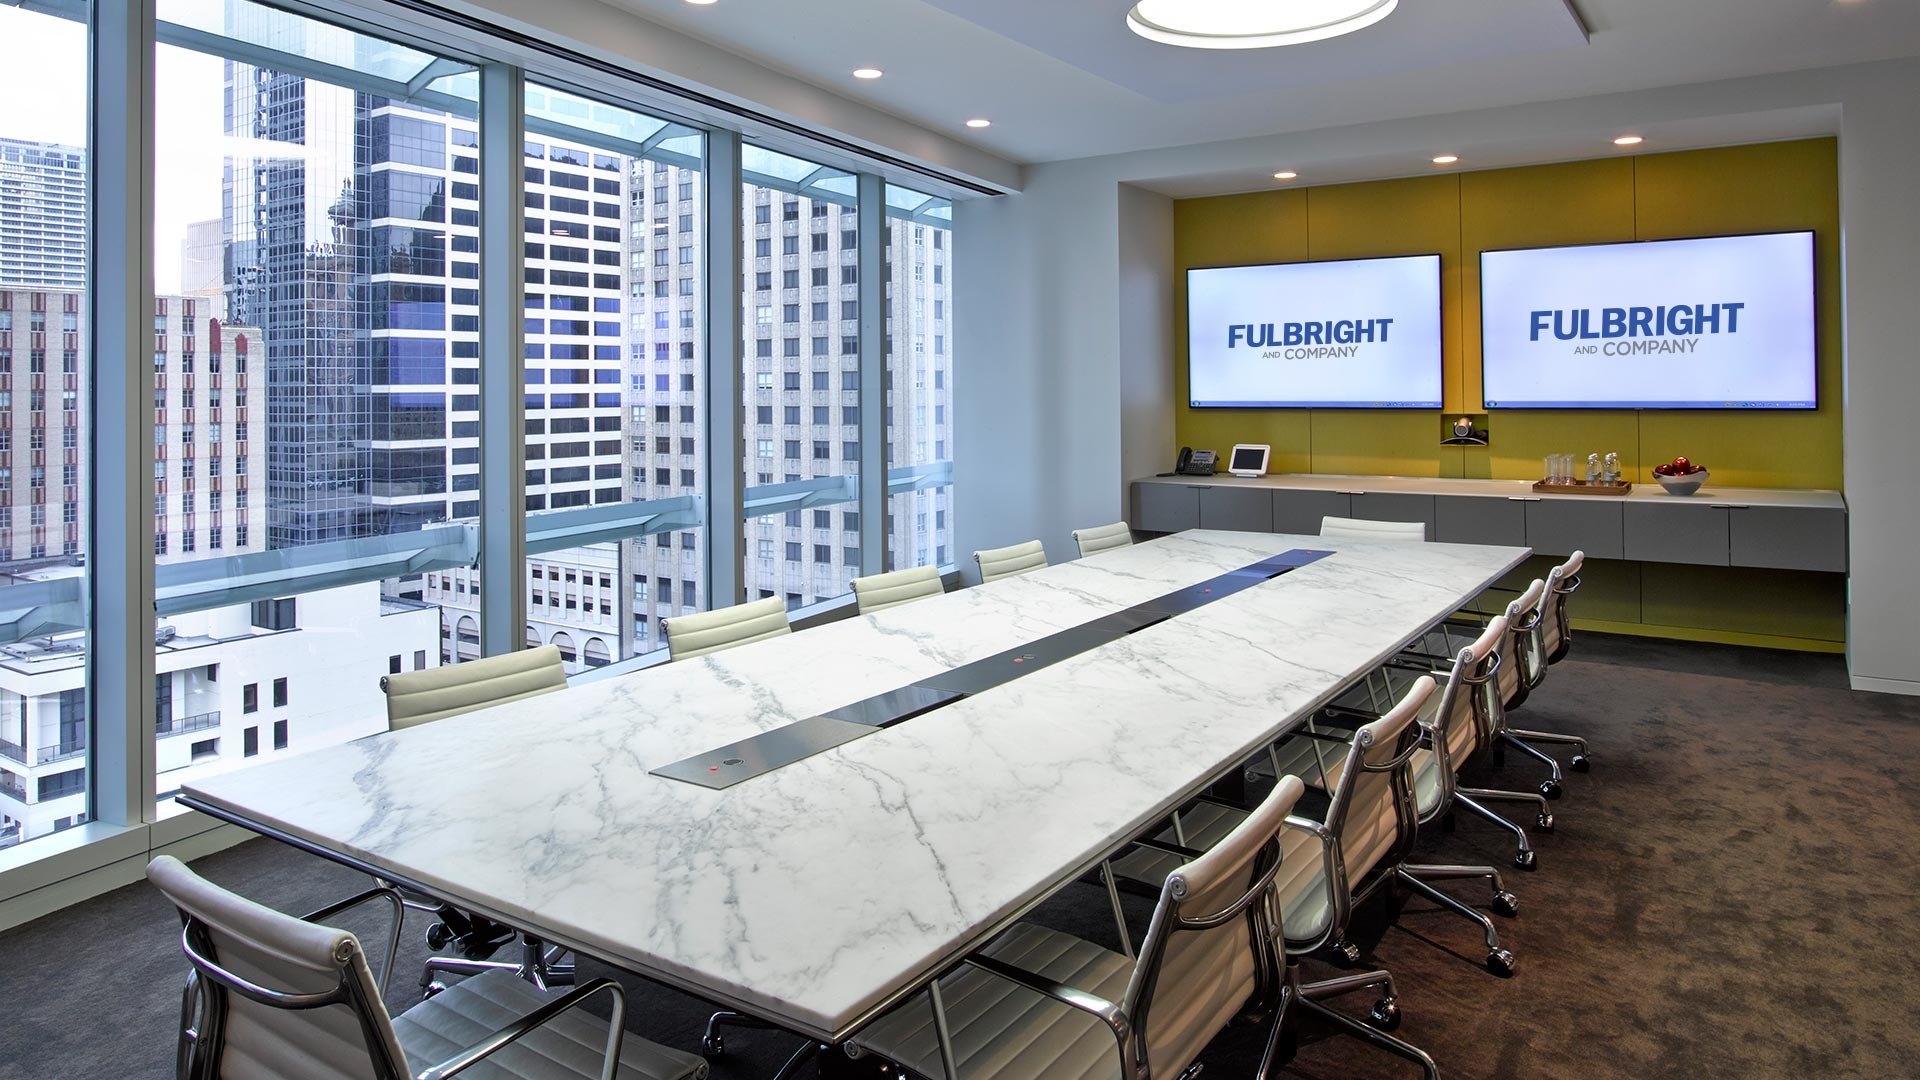 Custom Office Furniture Spring TX By Fulbright Company - Large white conference table